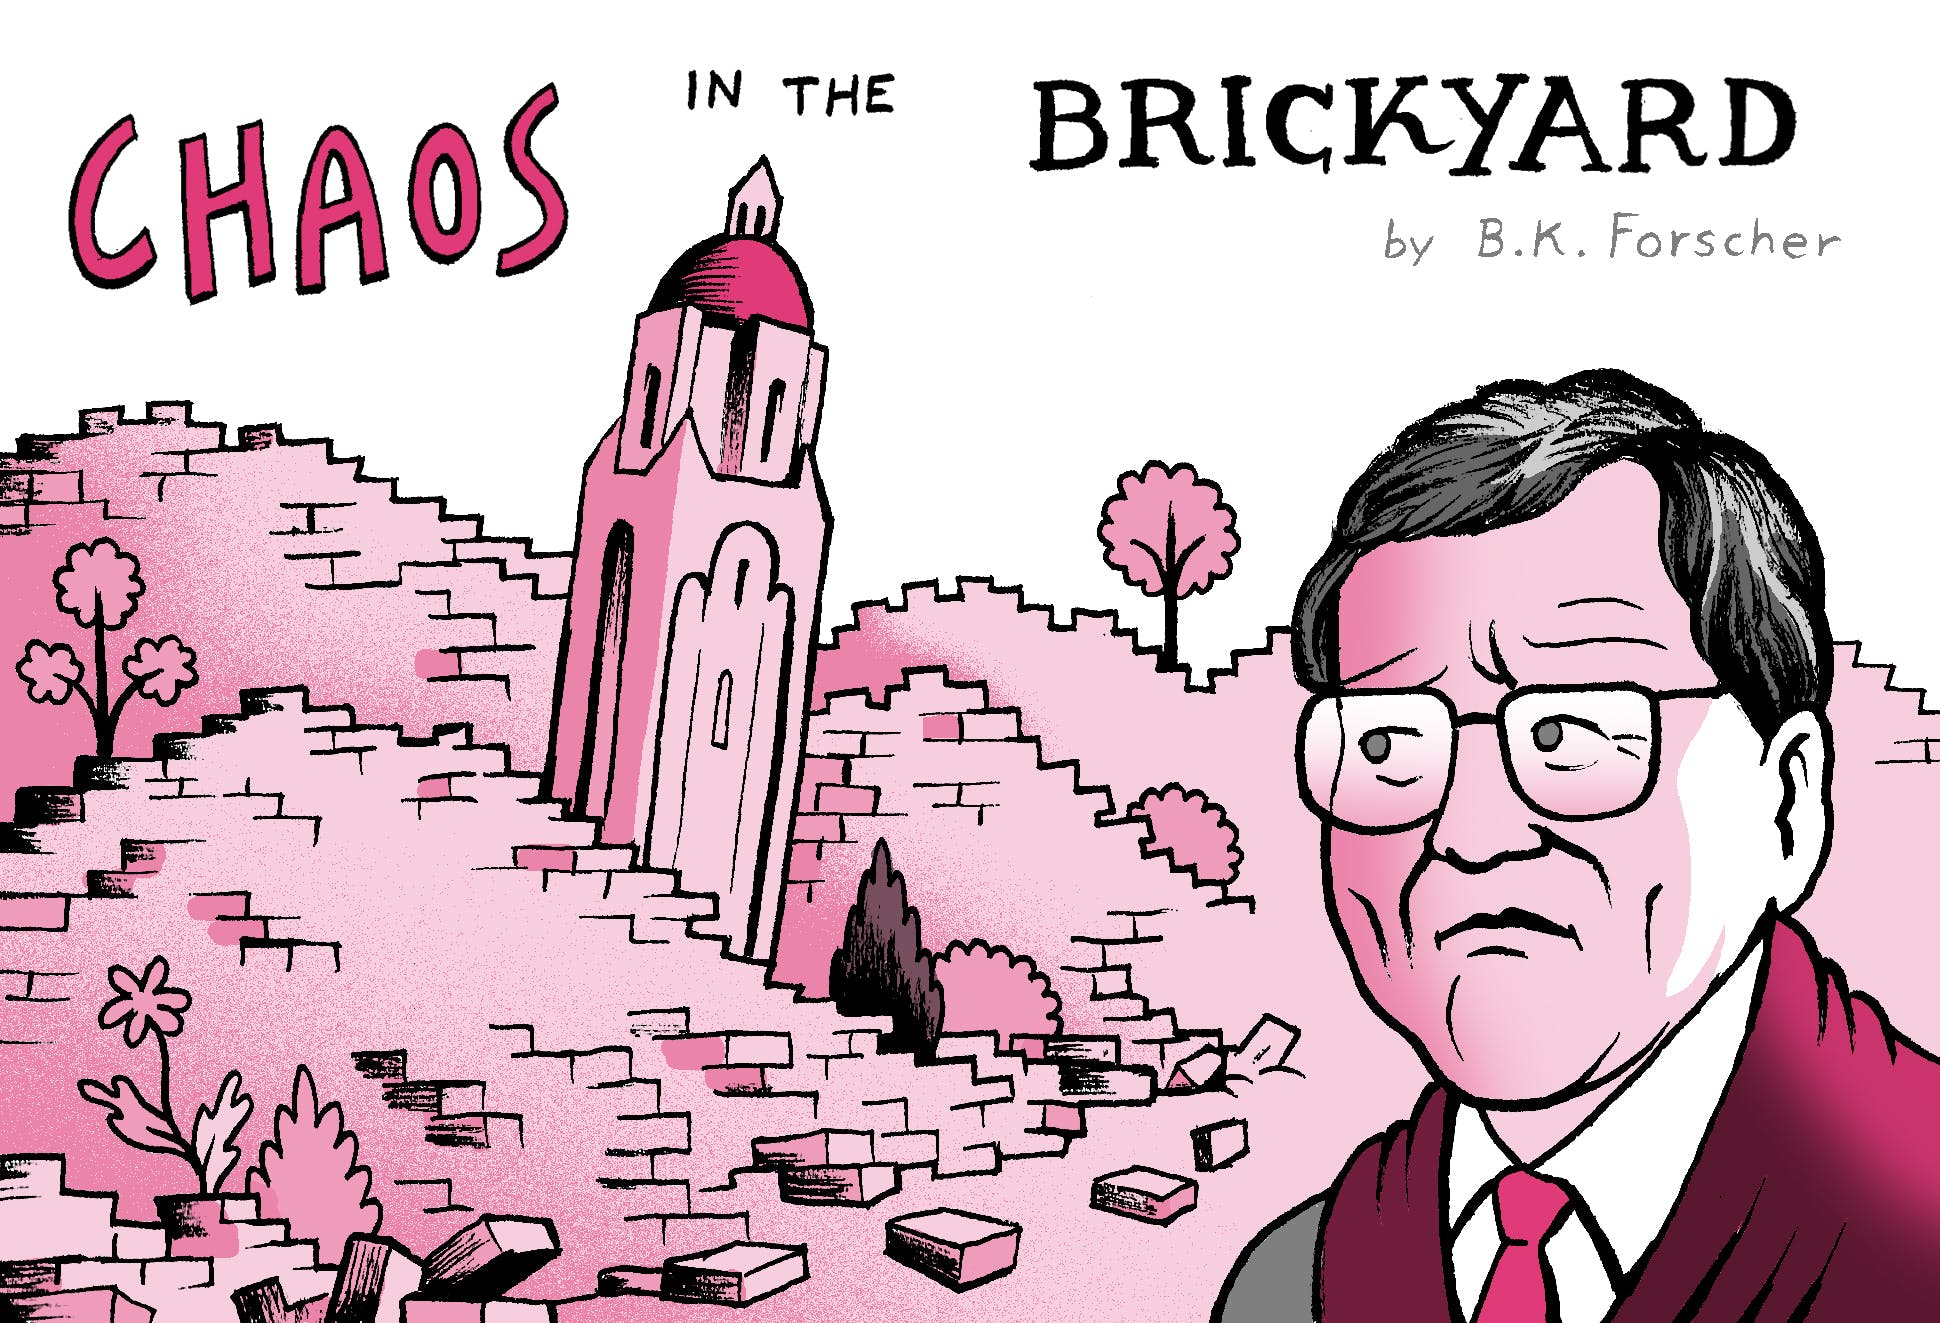 Chaos in the Brickyard, by B.K. Forscher